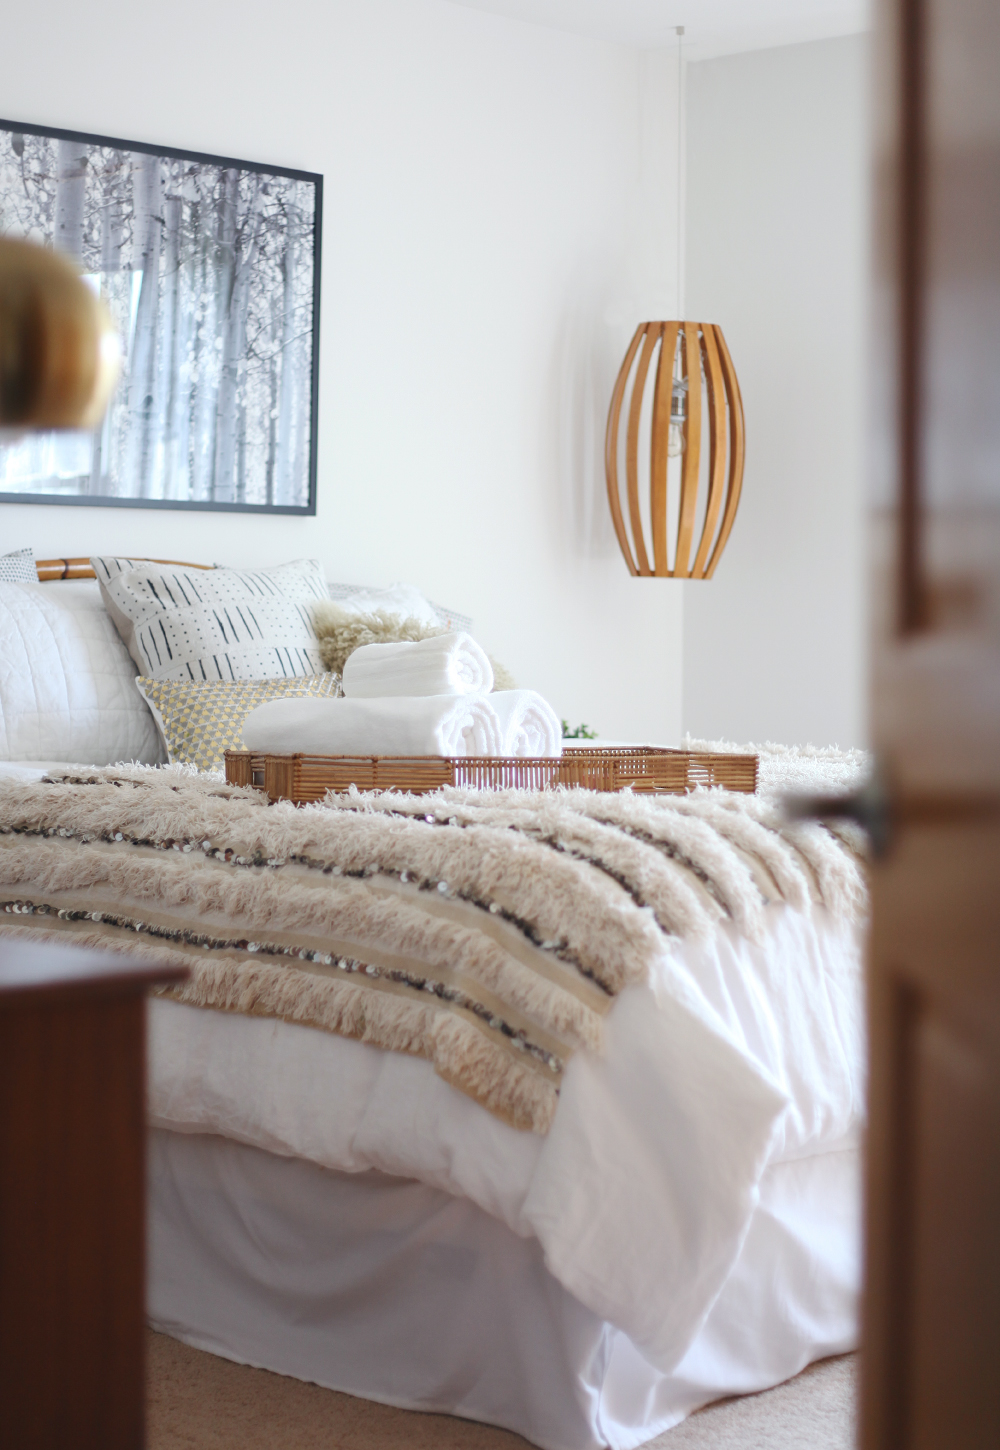 2015 08 28 1440782466 6087329 AfterBedCloseUpAngled jpg. Stylish Bedroom Ideas From House of Hipster s Online Interior